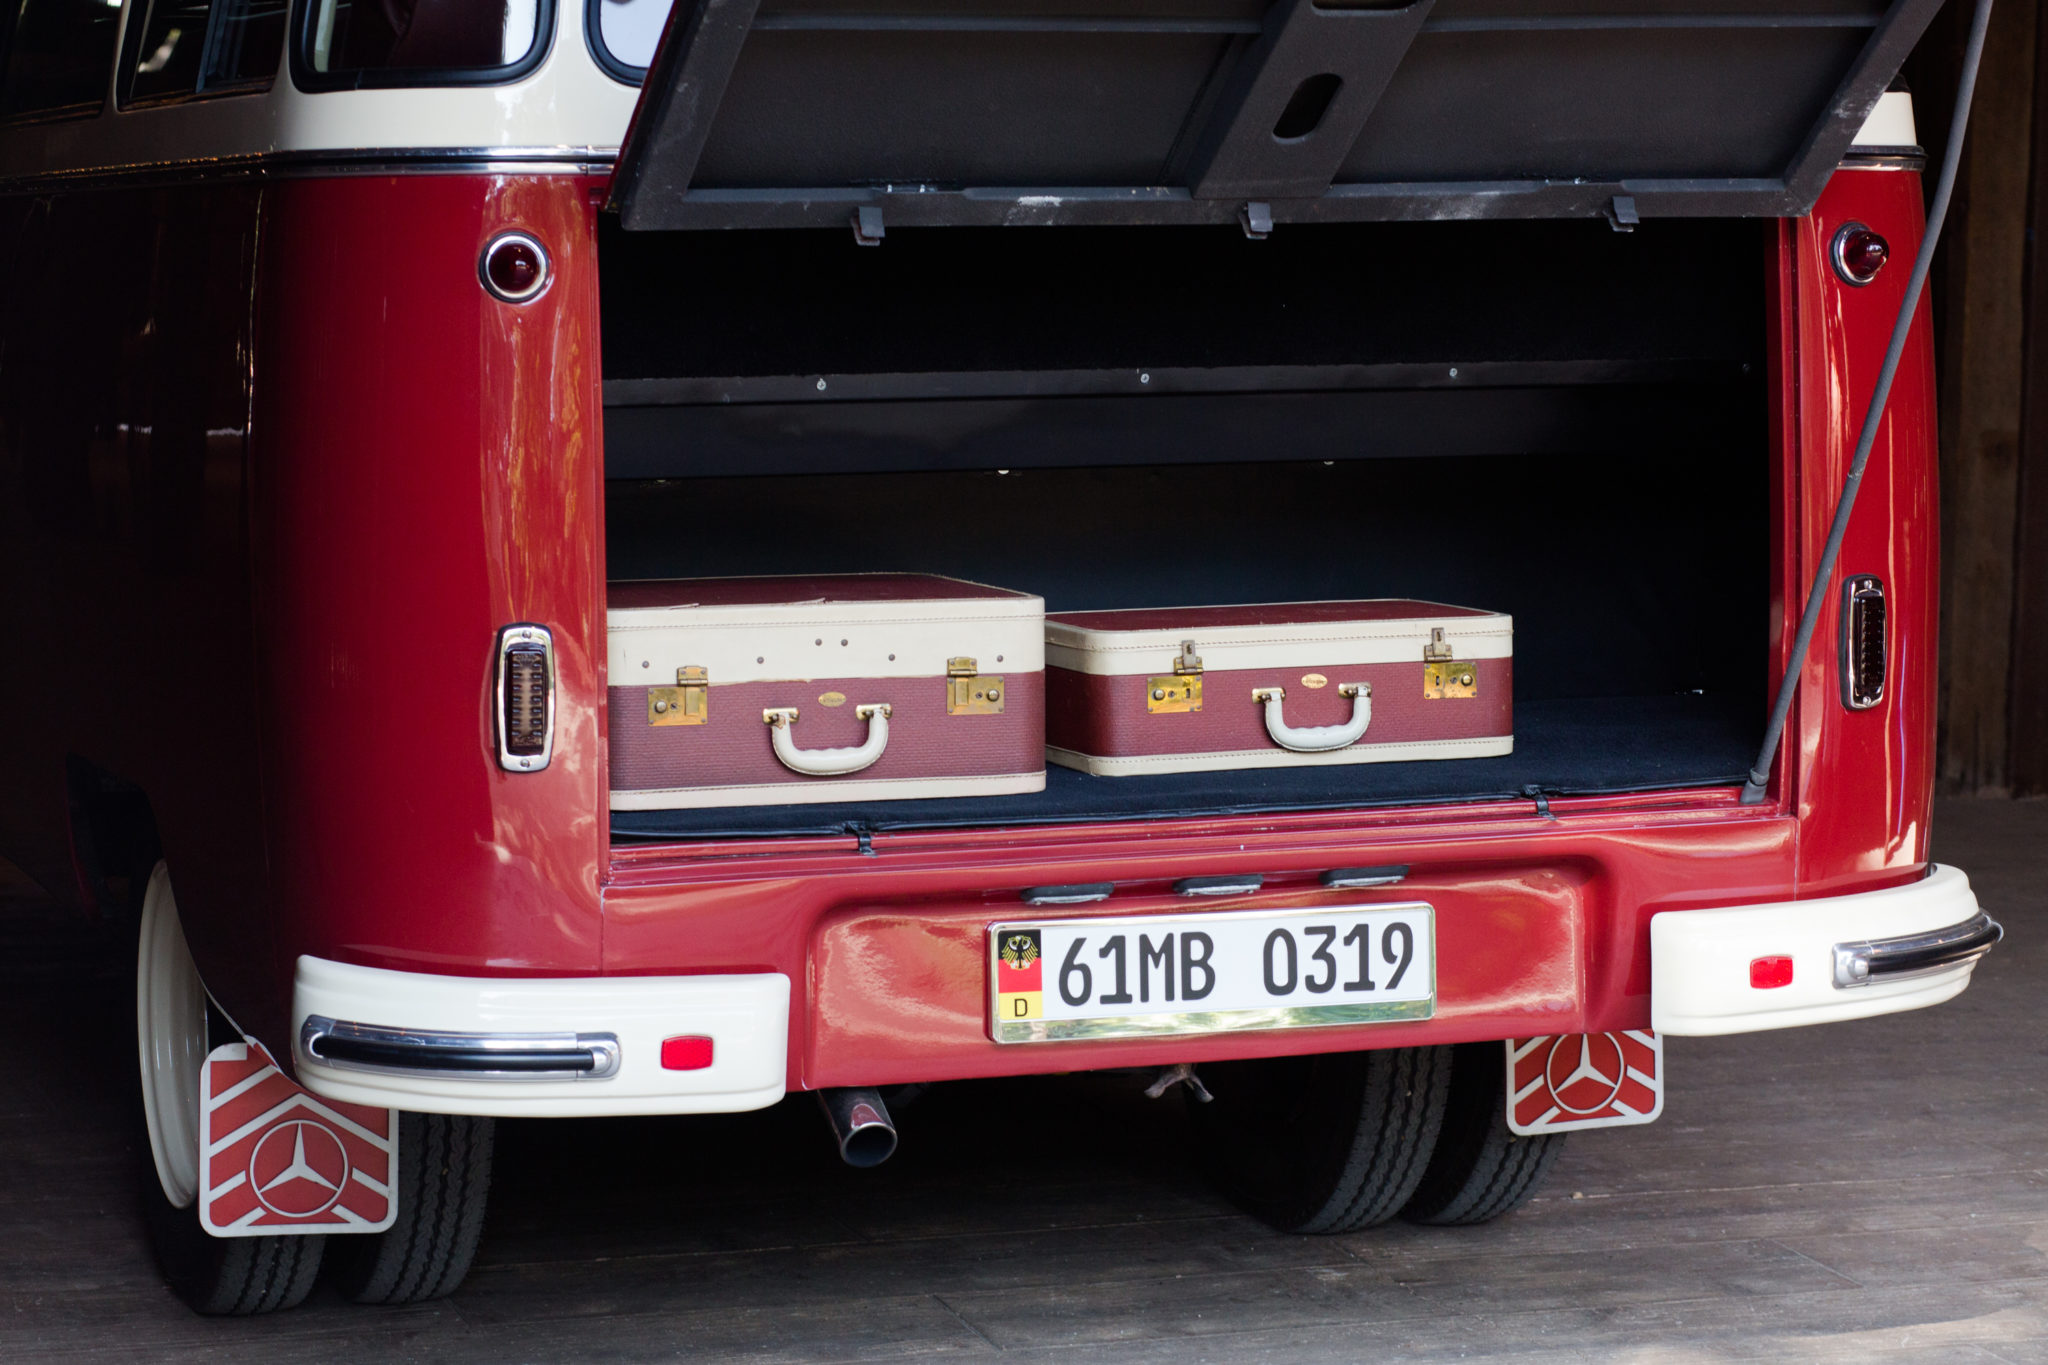 1961 Mercedes-Benz O 319 Suitcases in Open Trunk